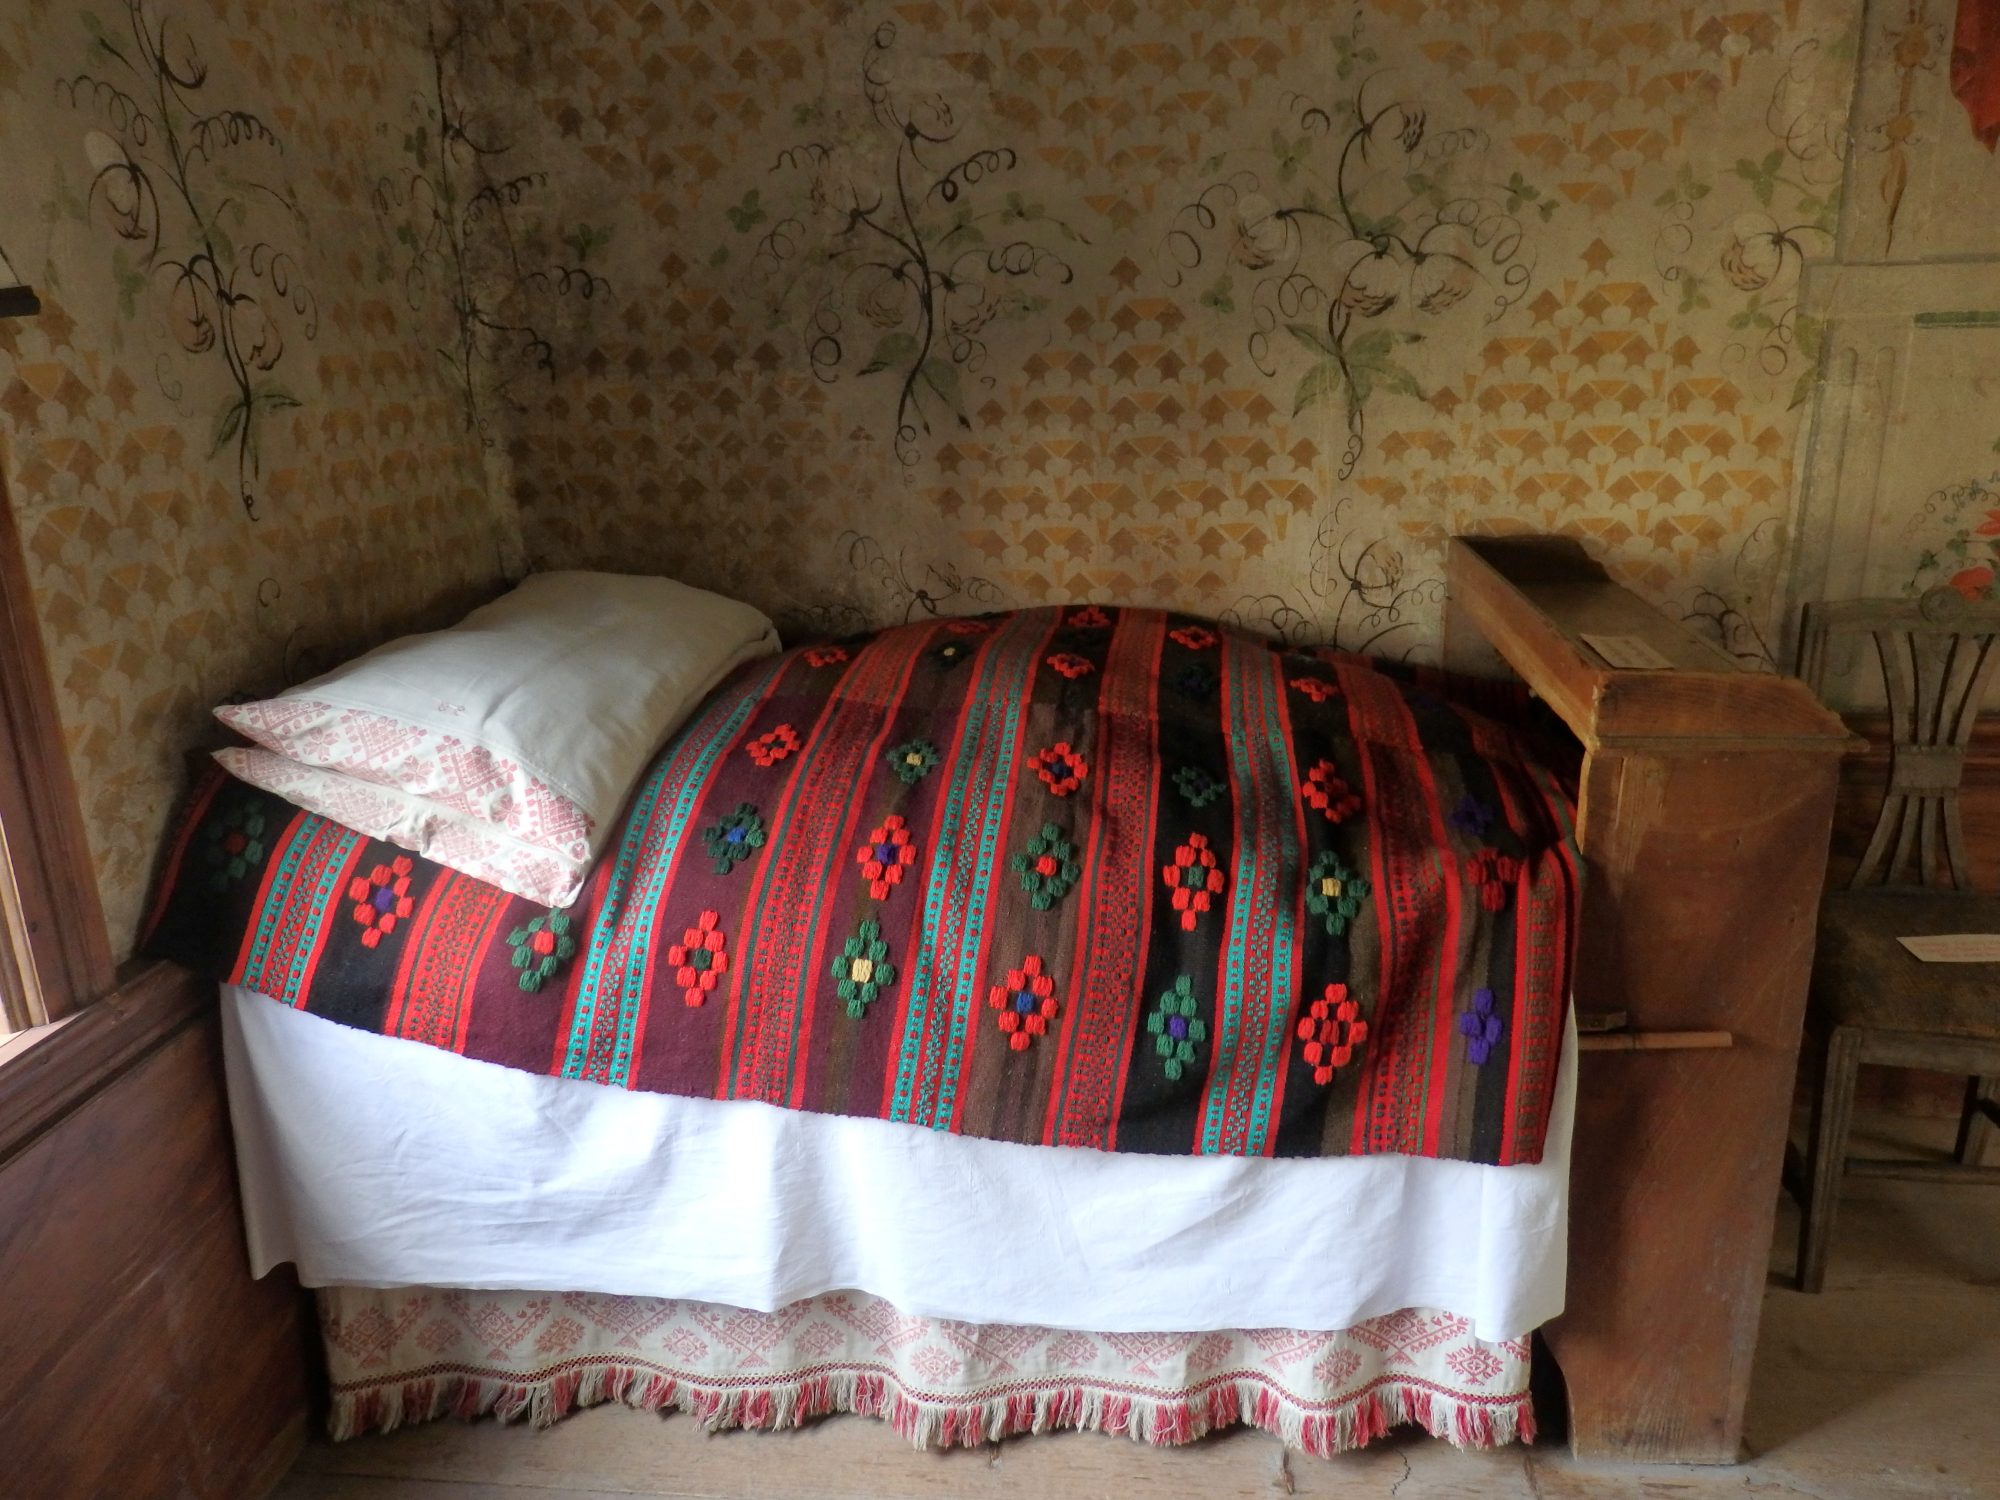 an 1850 farmhouse bedroom at Skansen, Stockholm, Sweden